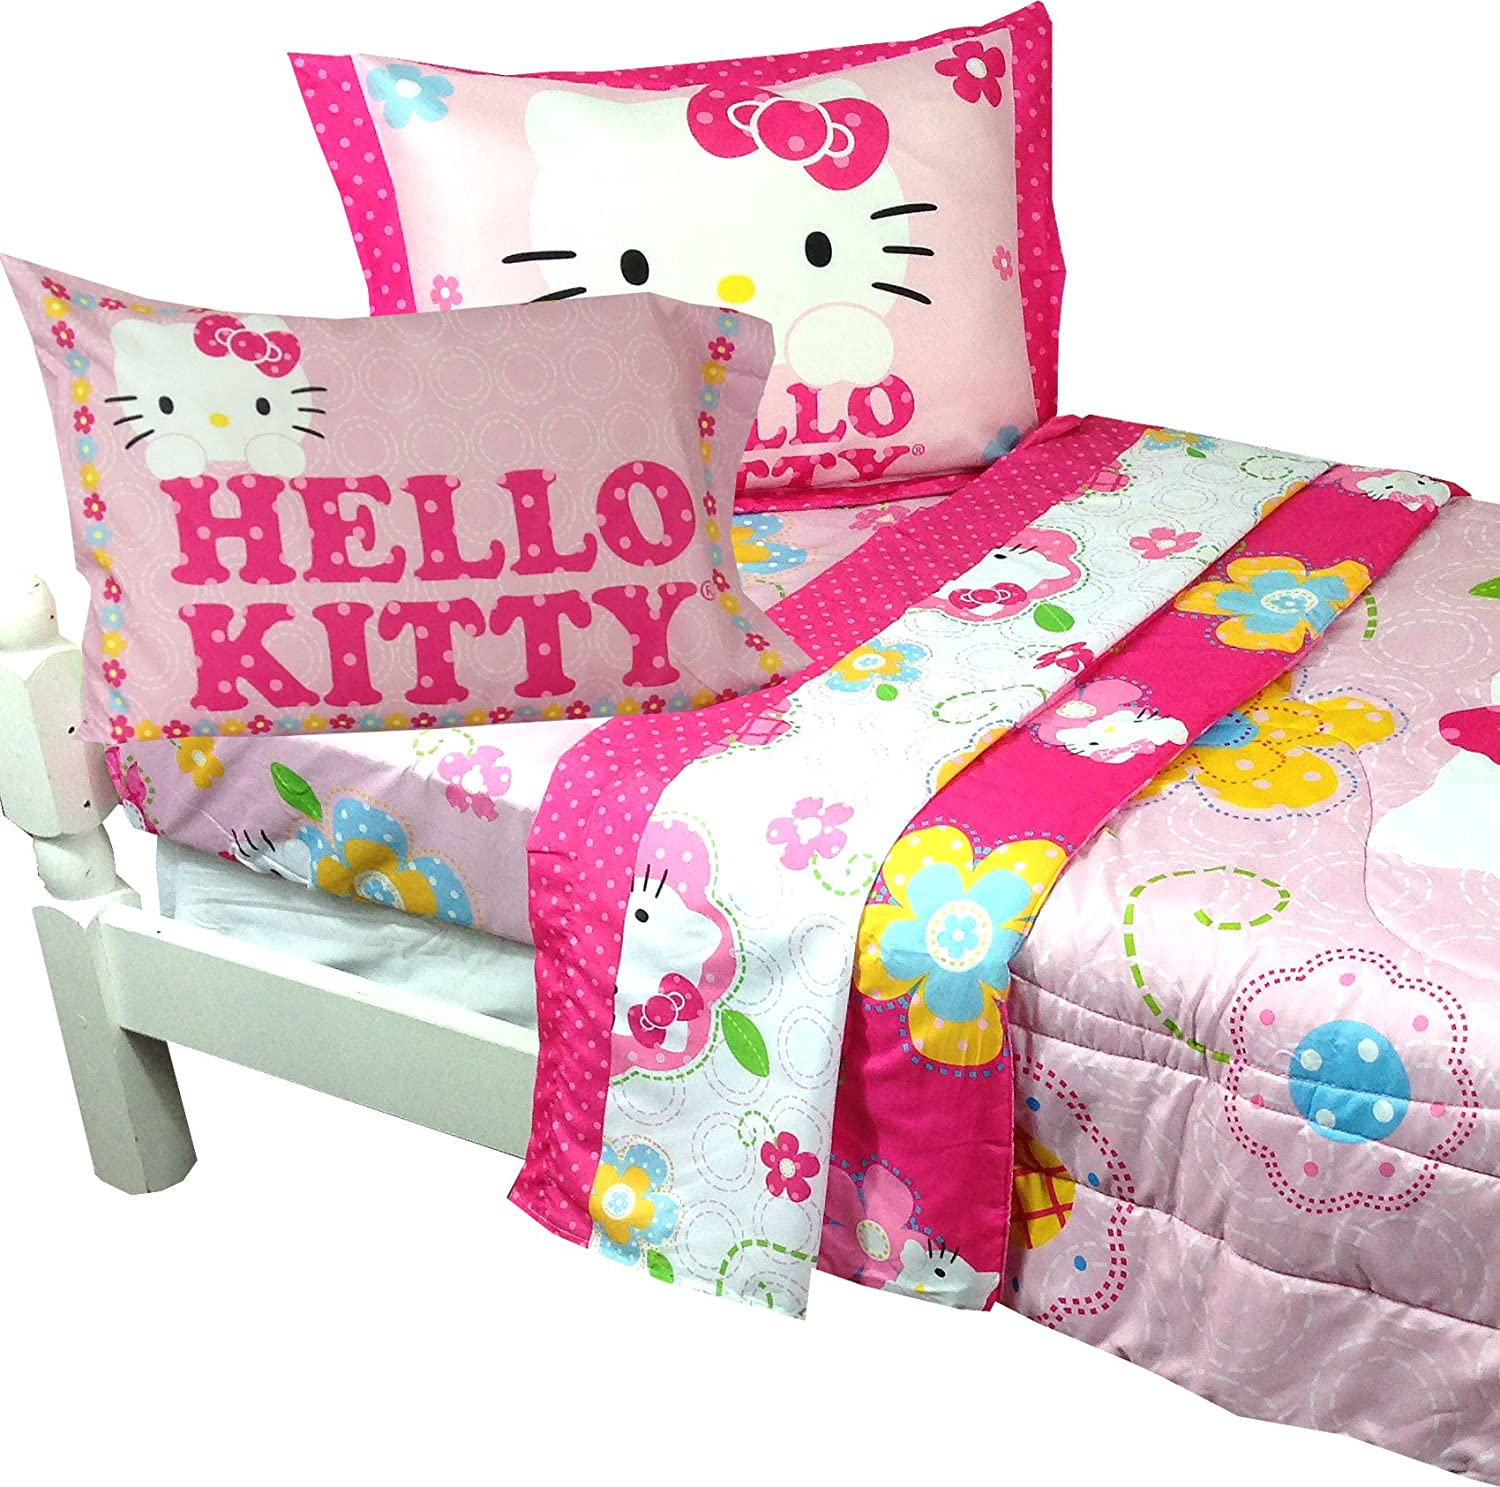 NEW HELLO KITTY 10 PC TWIN FLOWERS PLETE BED SET w RUG